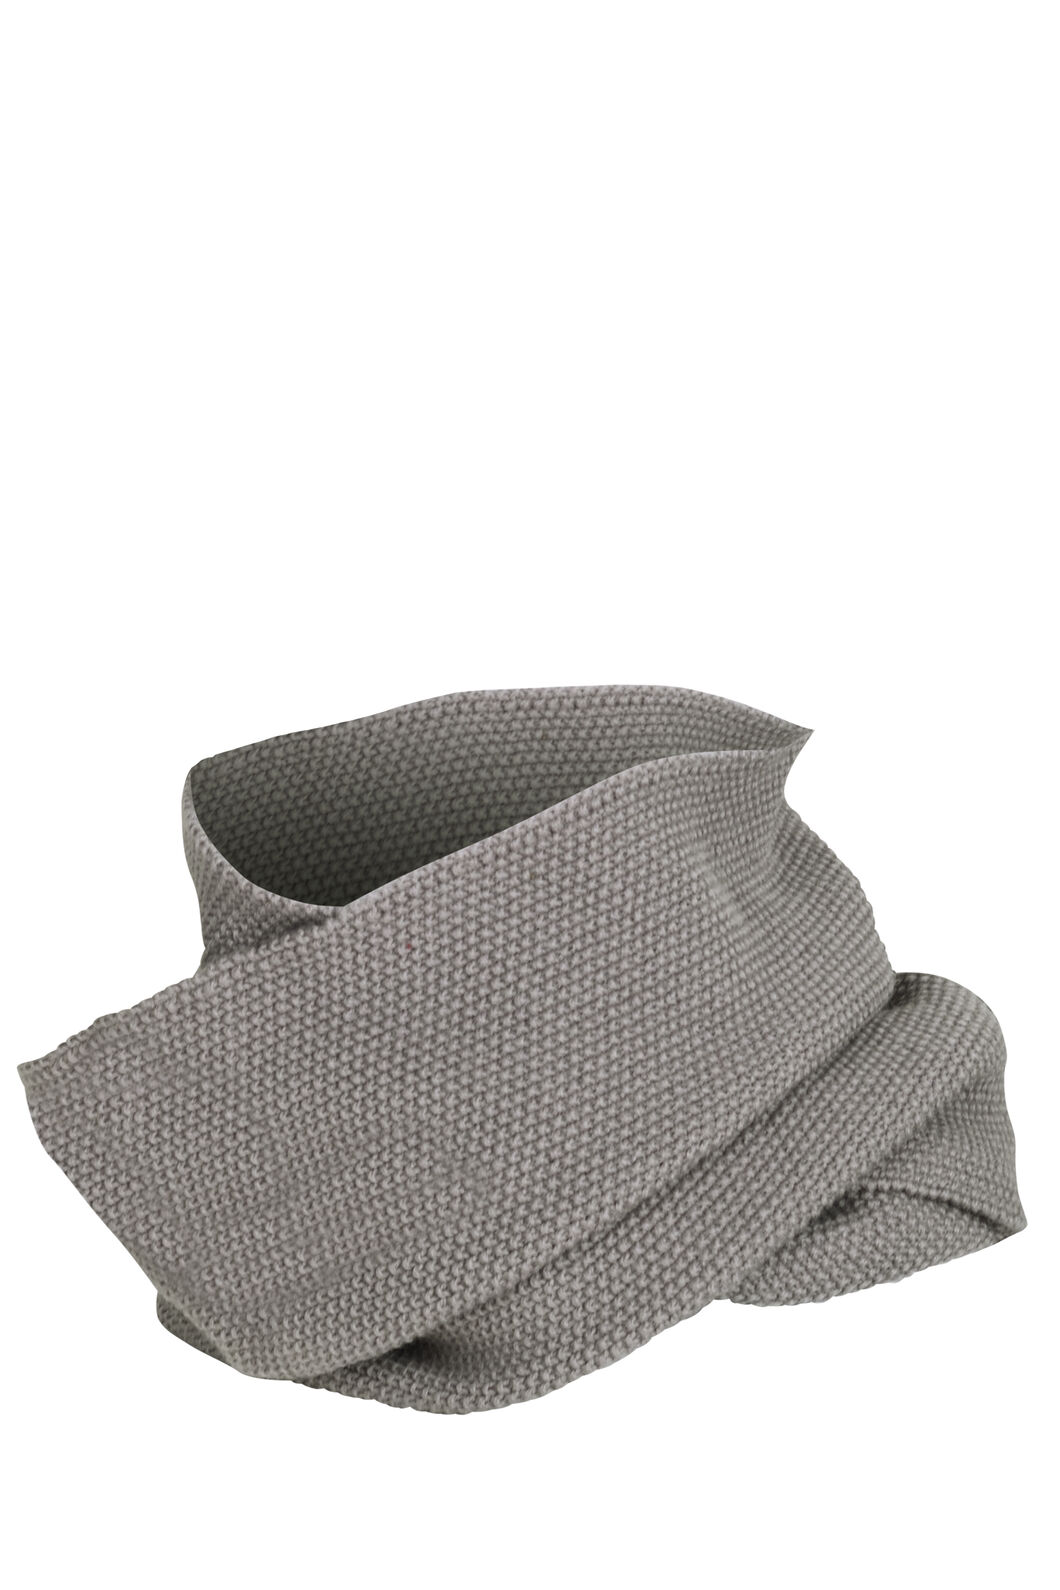 Macpac Pearl Knit Infinity Scarf, Timberwolf, hi-res